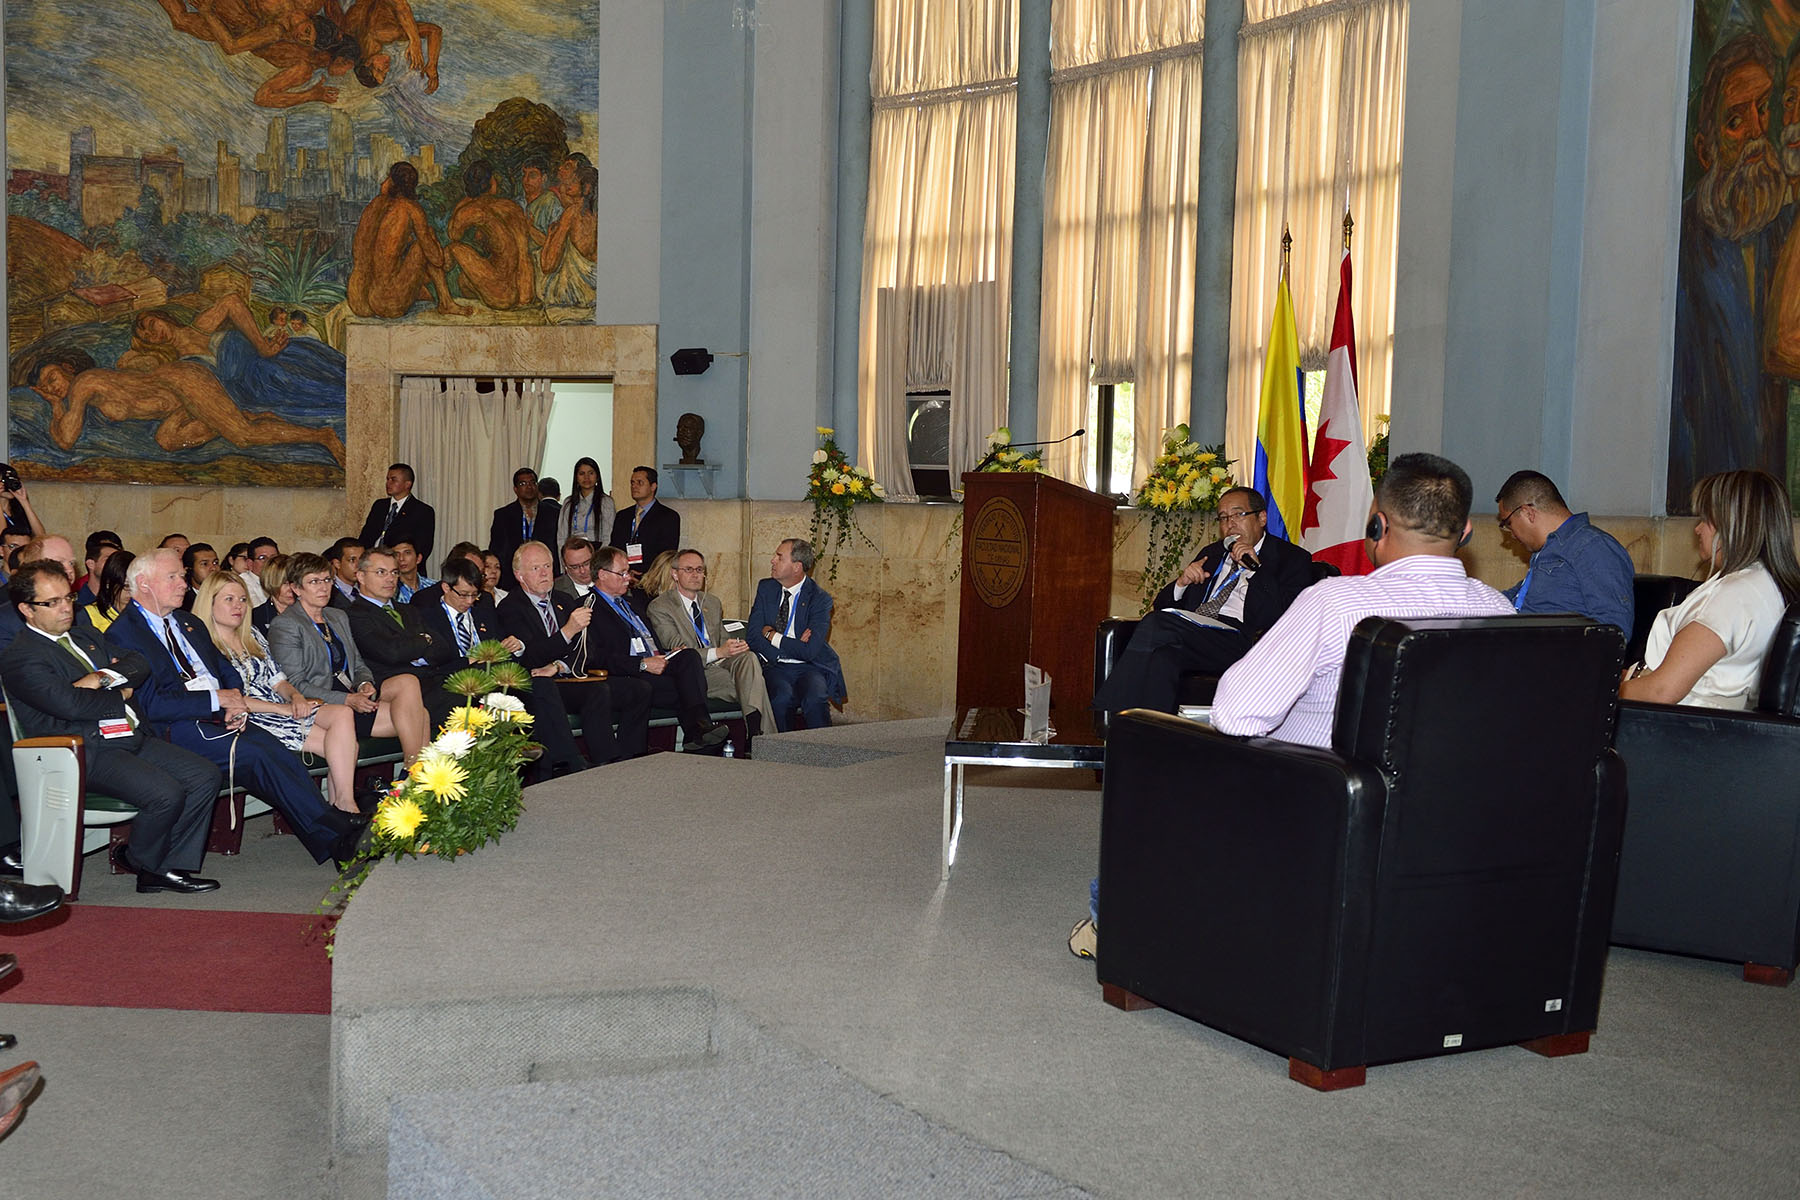 The Governor General visited the Faculty of Mines of the National University of Antioquia. He heard testimonials from two local miners who have transitioned from illegal to formal mining. Colombia is the world's tenth-largest producer and fourth-largest exporter of coal, with an annual production of 85.5 million tons in 2013. With over 40 active mining exploration and production firms, Canadian presence accounts for more than 60 per cent of Colombia's mineral (hard rock) exploration market.